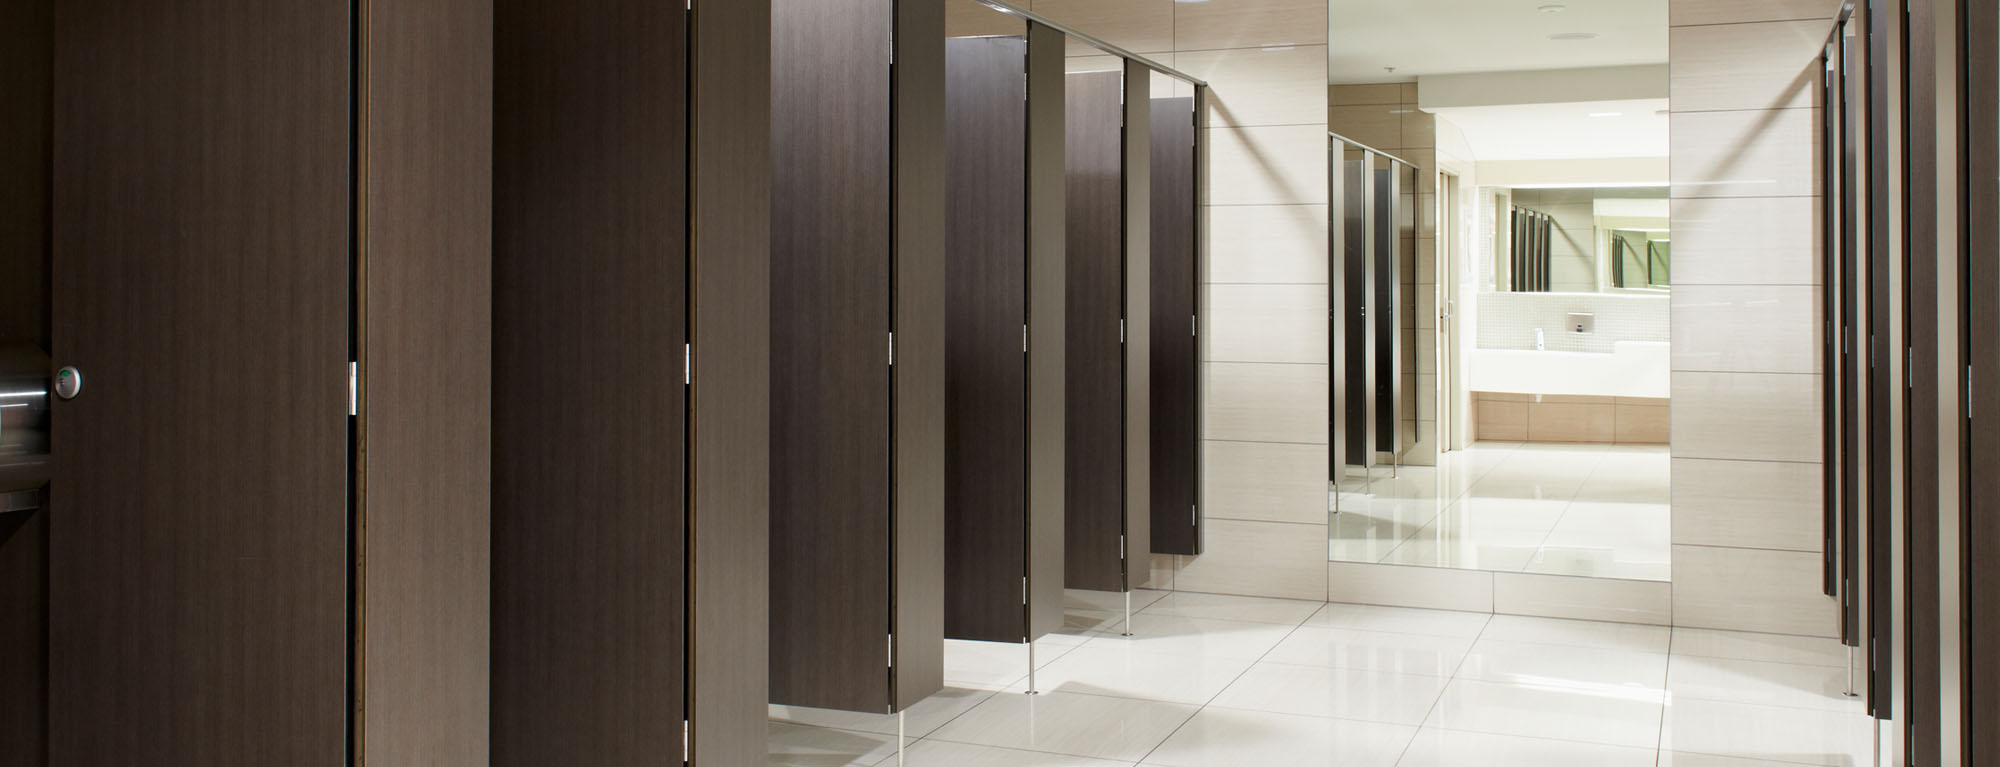 Resco Toilet Parions Wall Panelling Laboratory Benchtops Vanities Screens